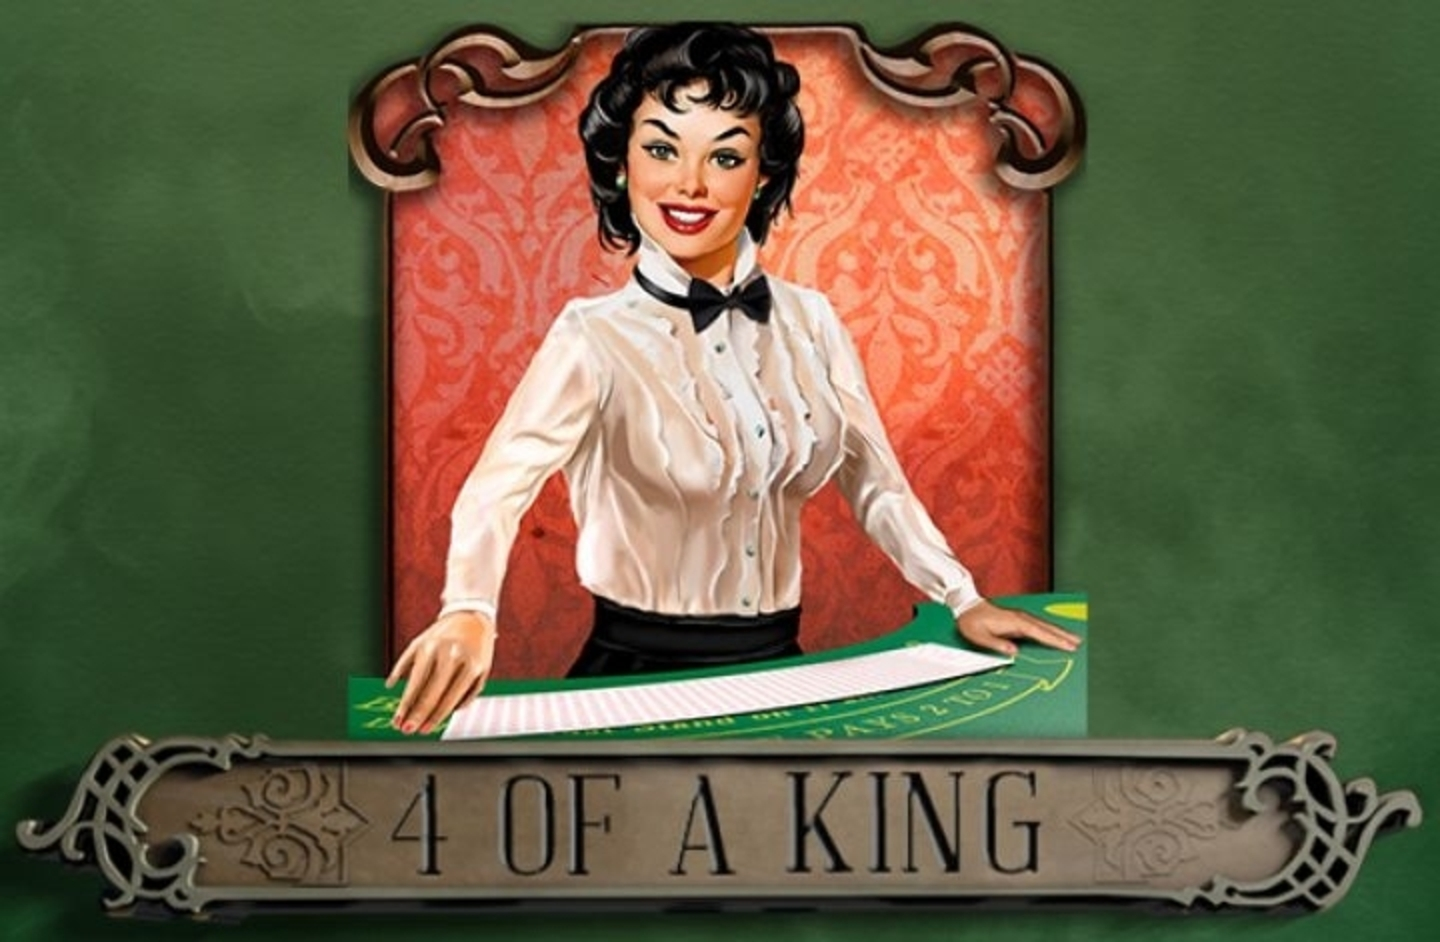 The 4 of a King Online Slot Demo Game by Endorphina